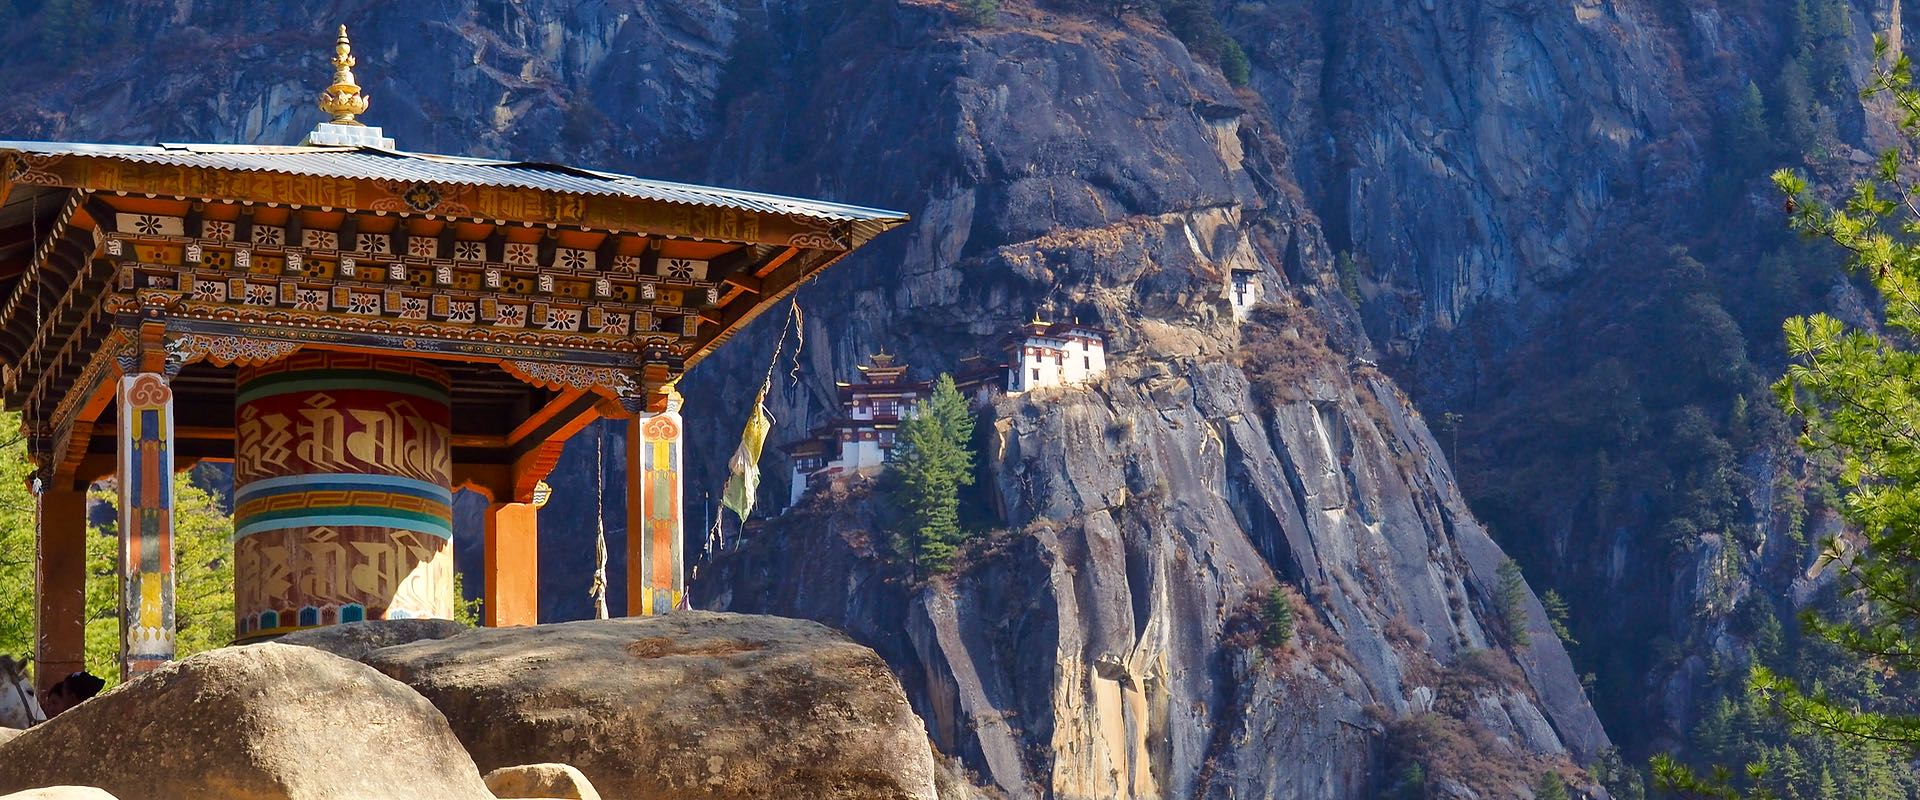 custom & private bhutan tours